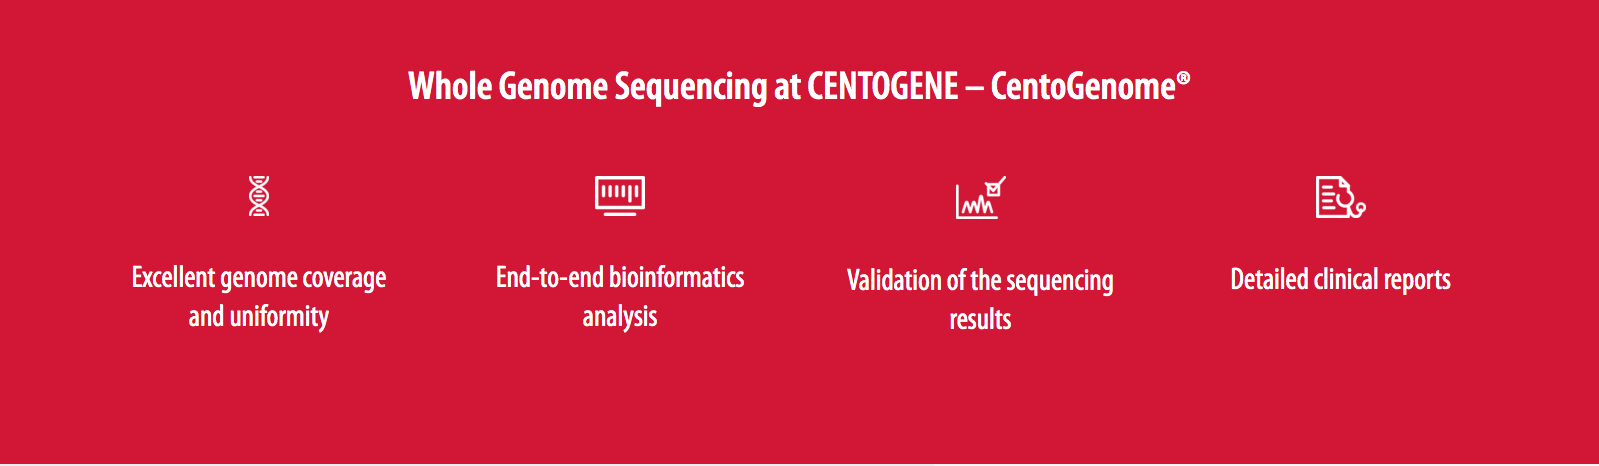 Features of Whole Genome Sequencing at Centogene